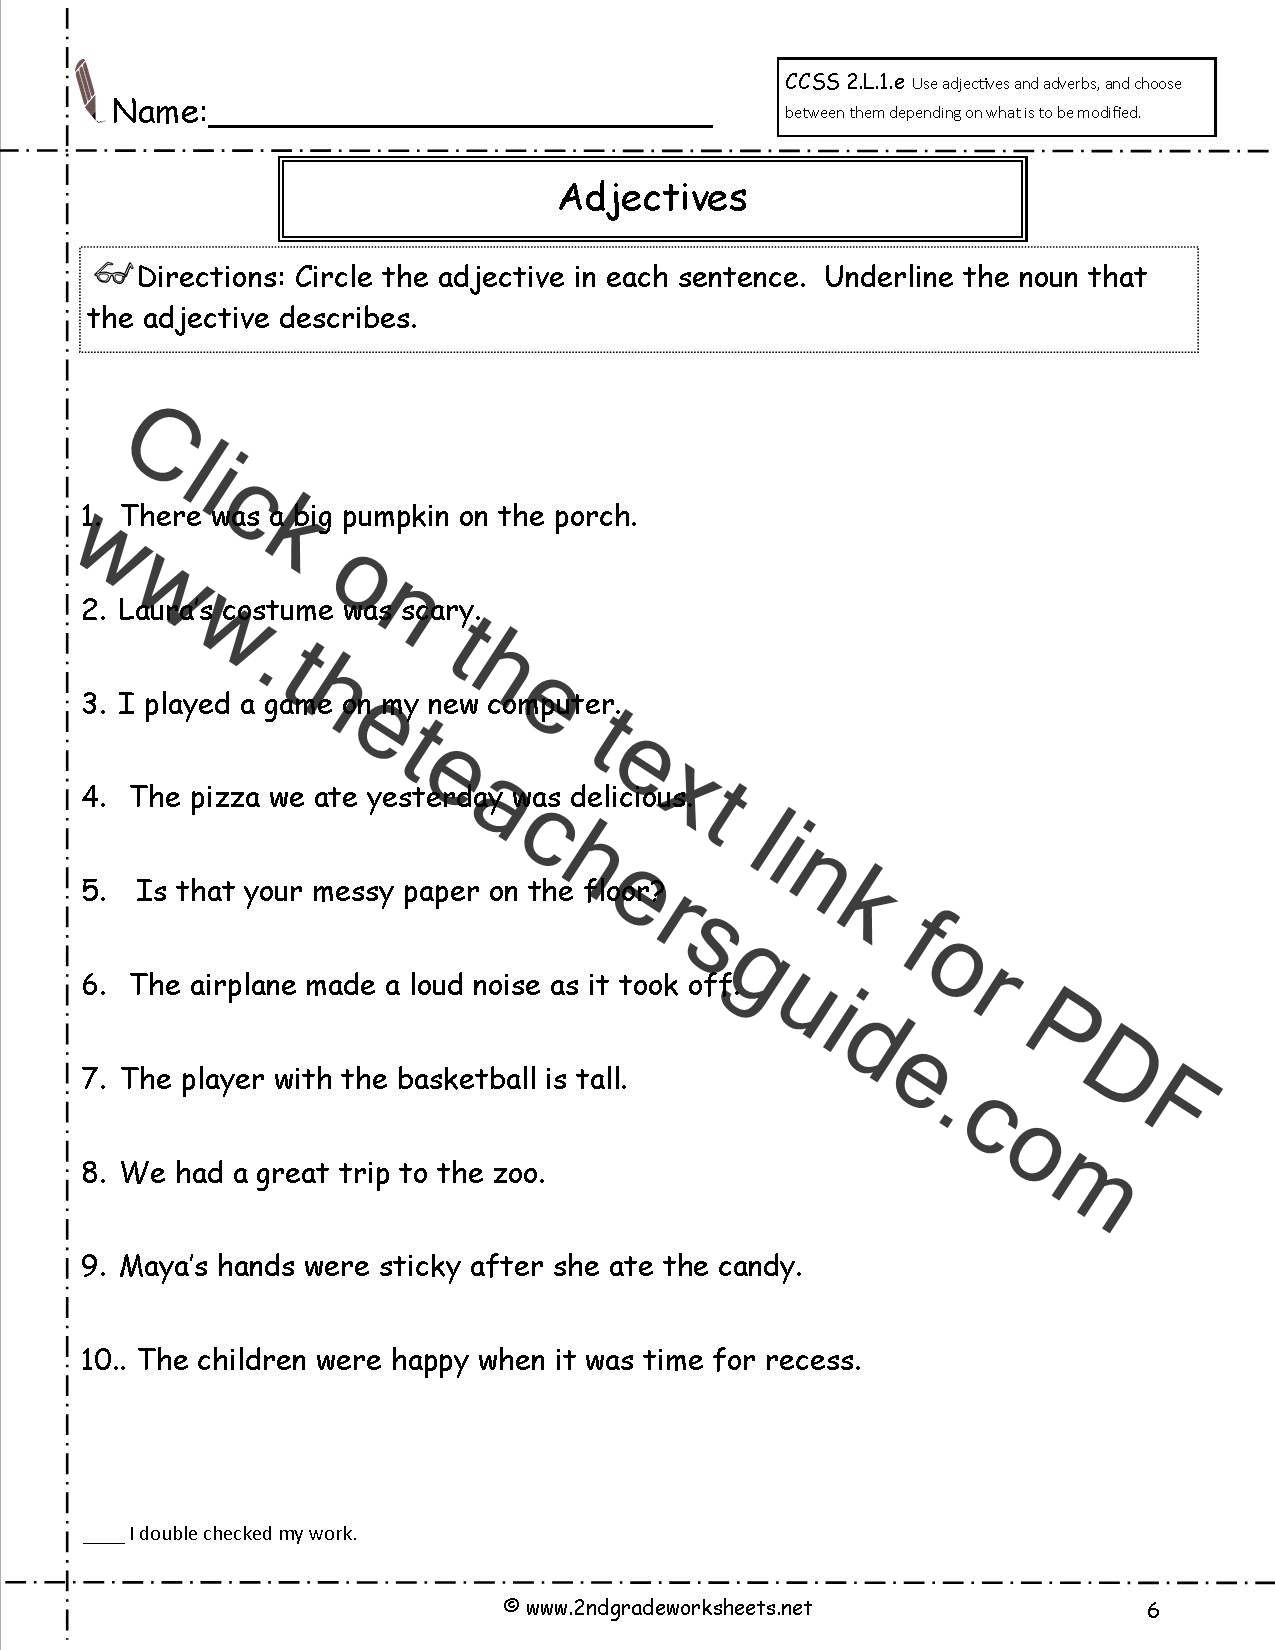 Worksheets Free Adjective Worksheets free using adjectives and adverbs worksheets adjective worksheet